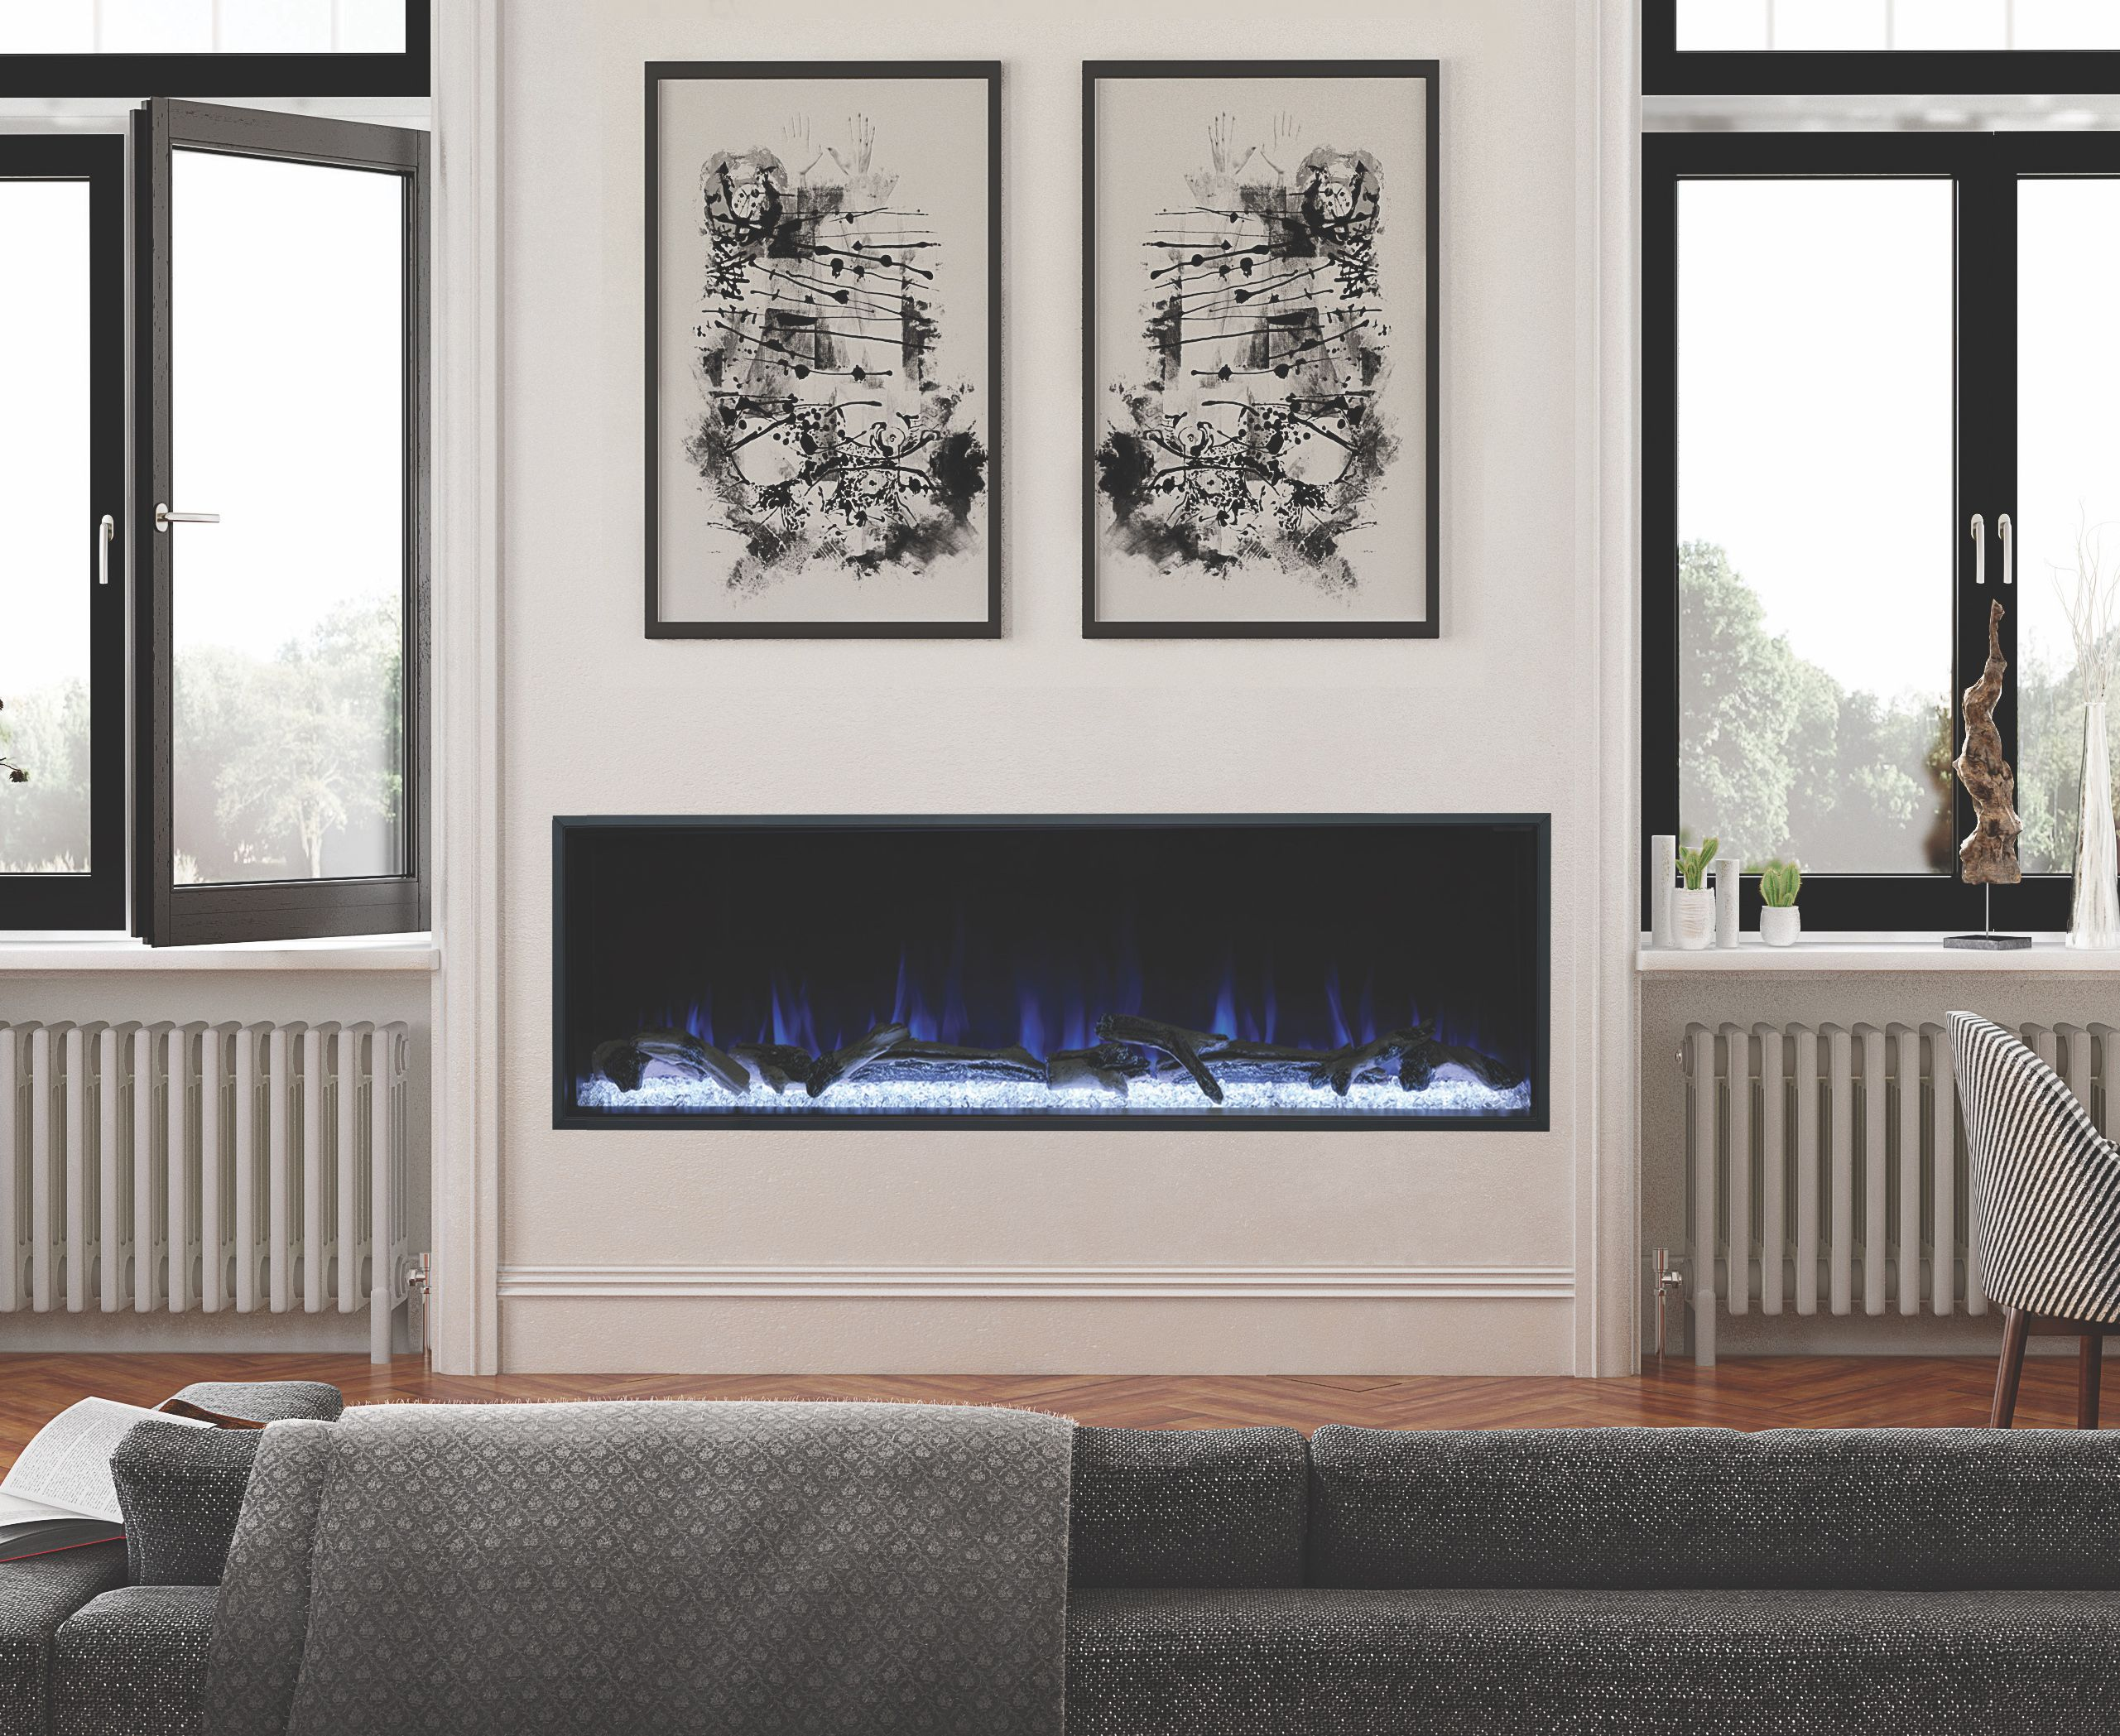 6 Fun Facts about Electric Fireplaces